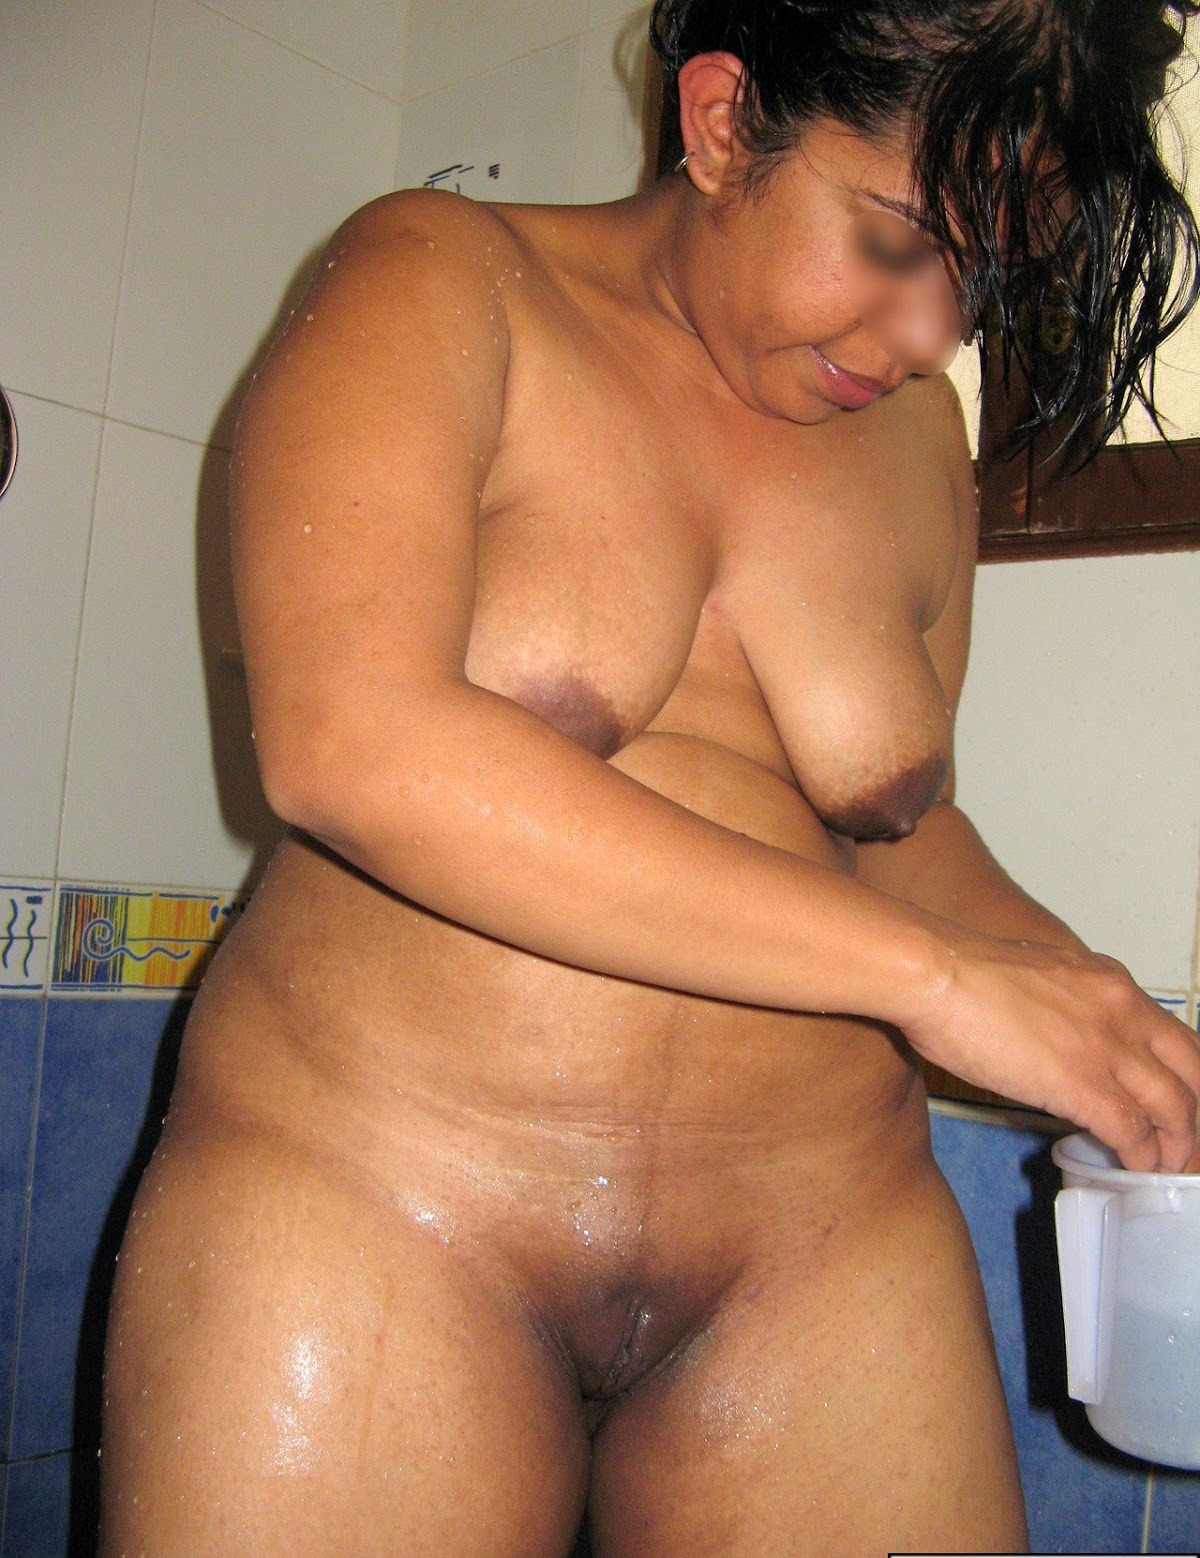 Tamil hot aunty hd nude pussy hairy nangi chut showing her boobs images | NUDE PICS HD